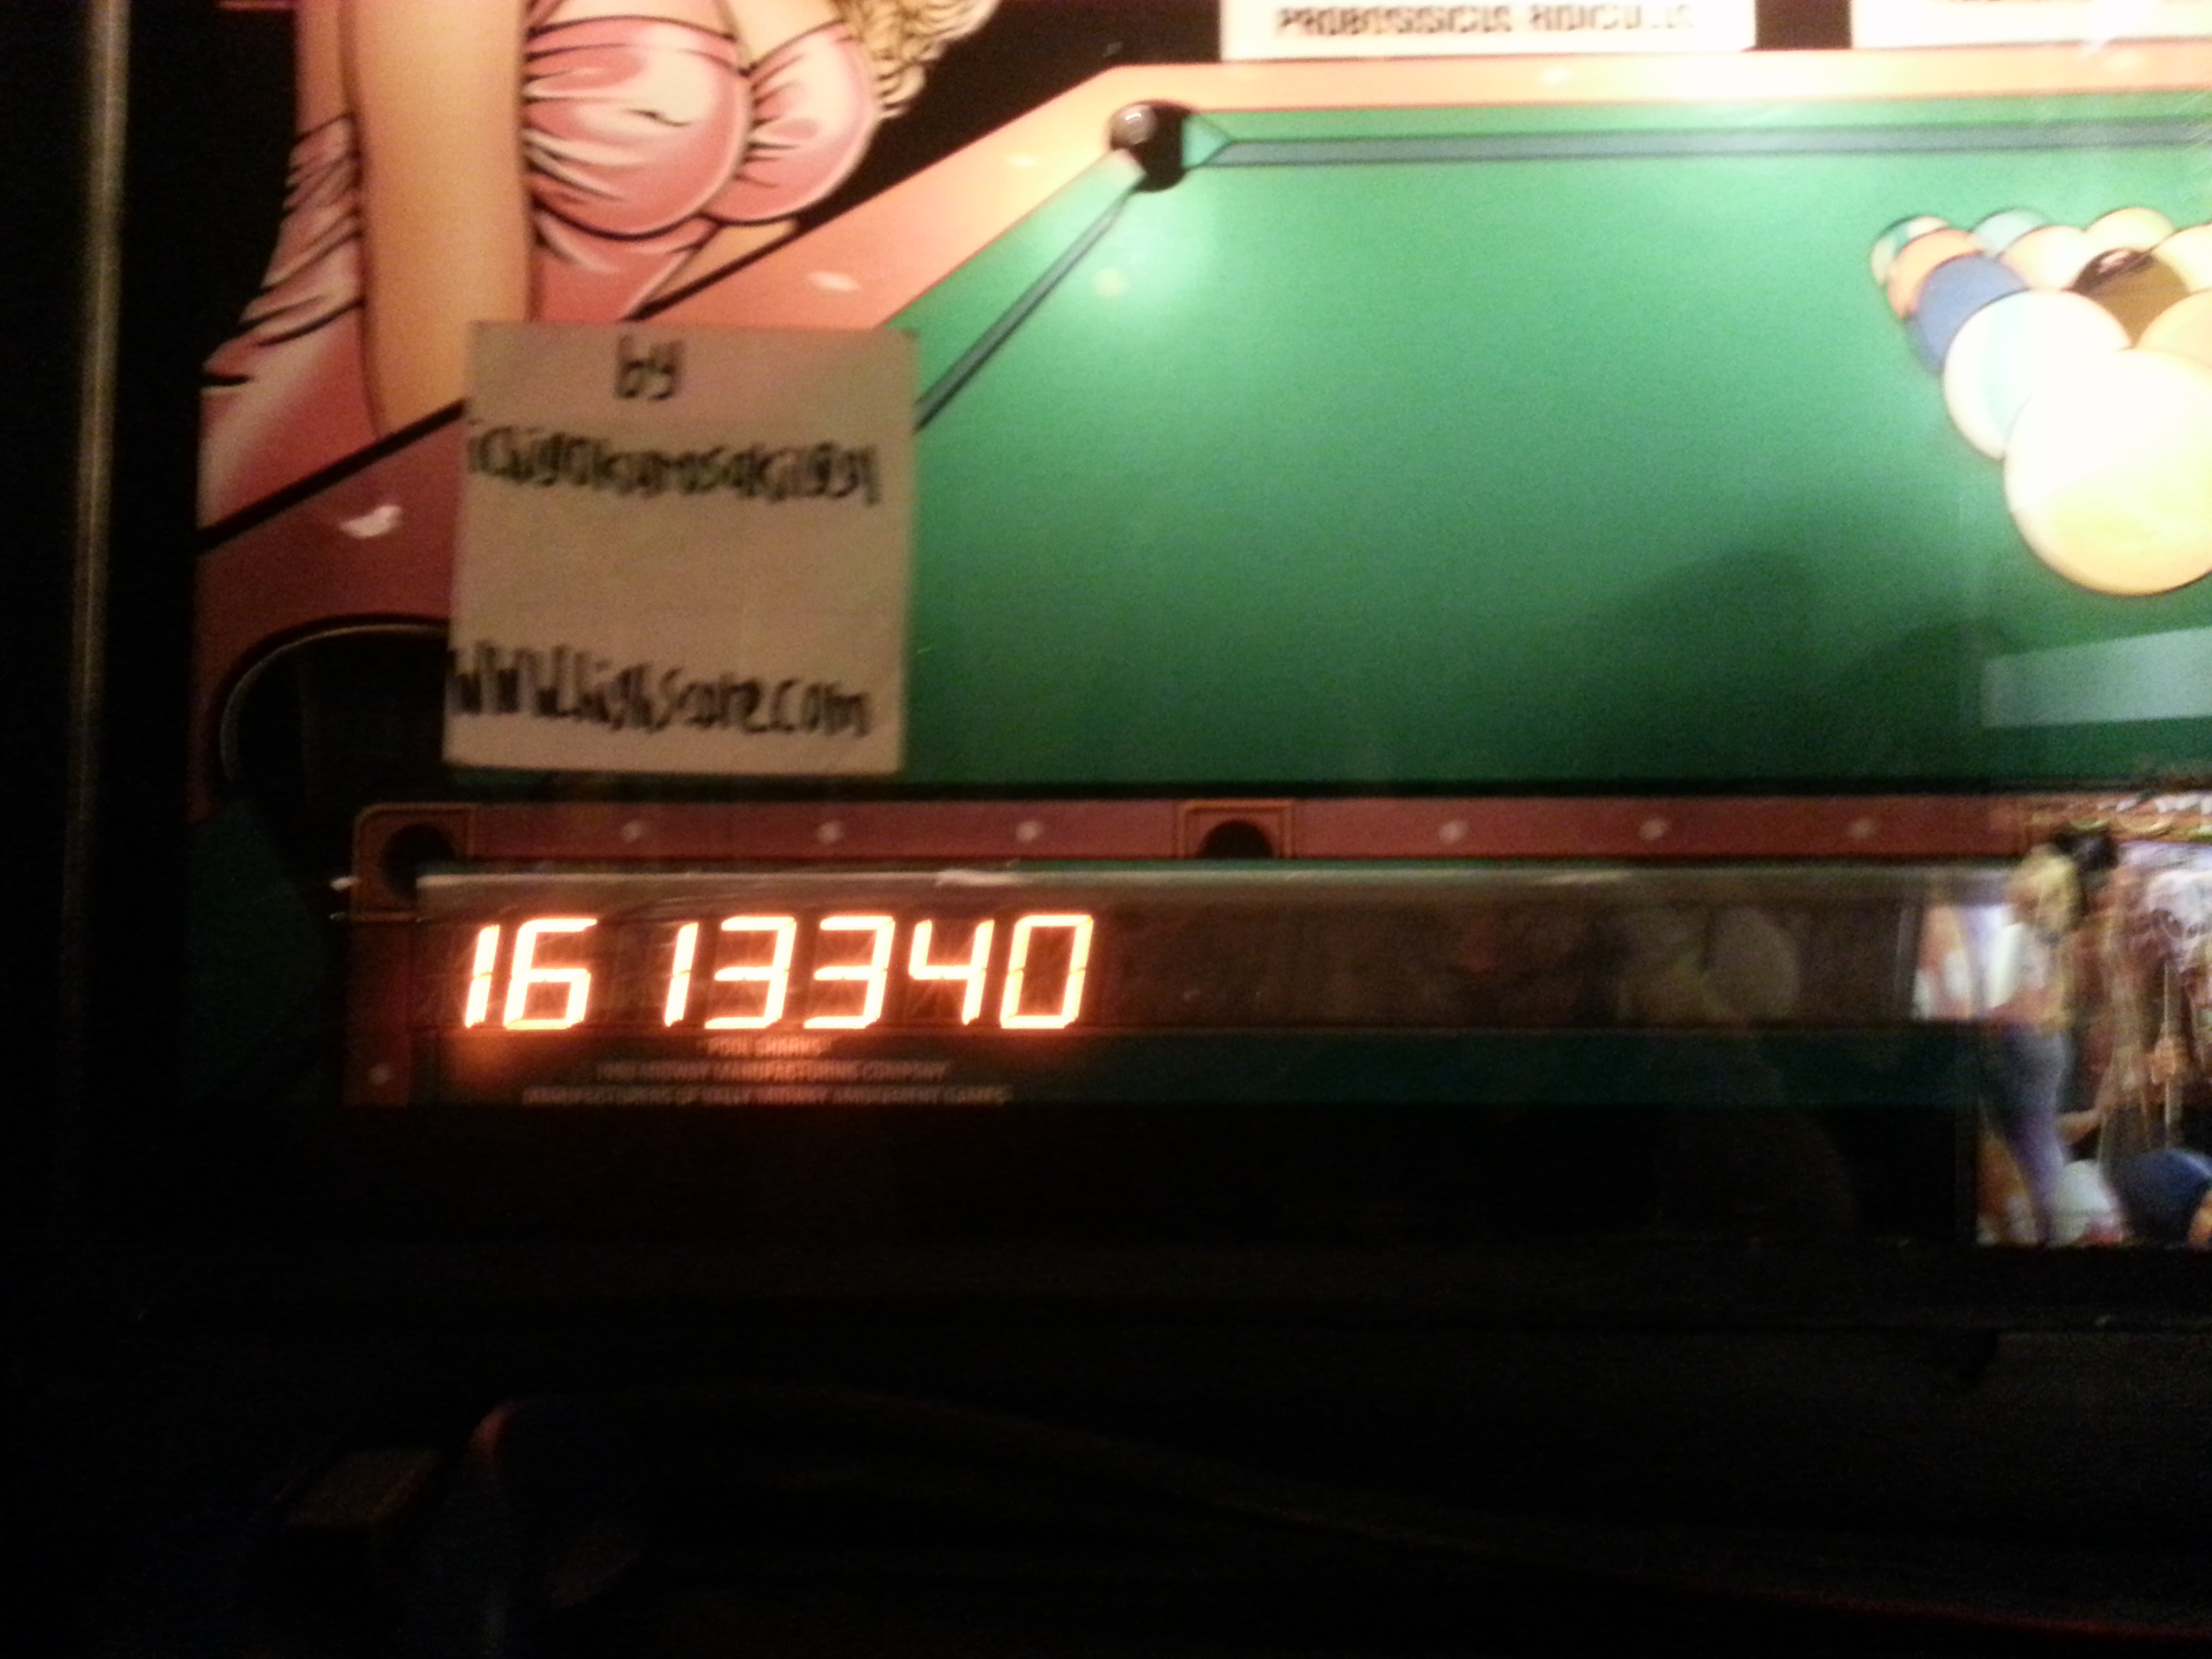 Pool Sharks 1,613,340 points